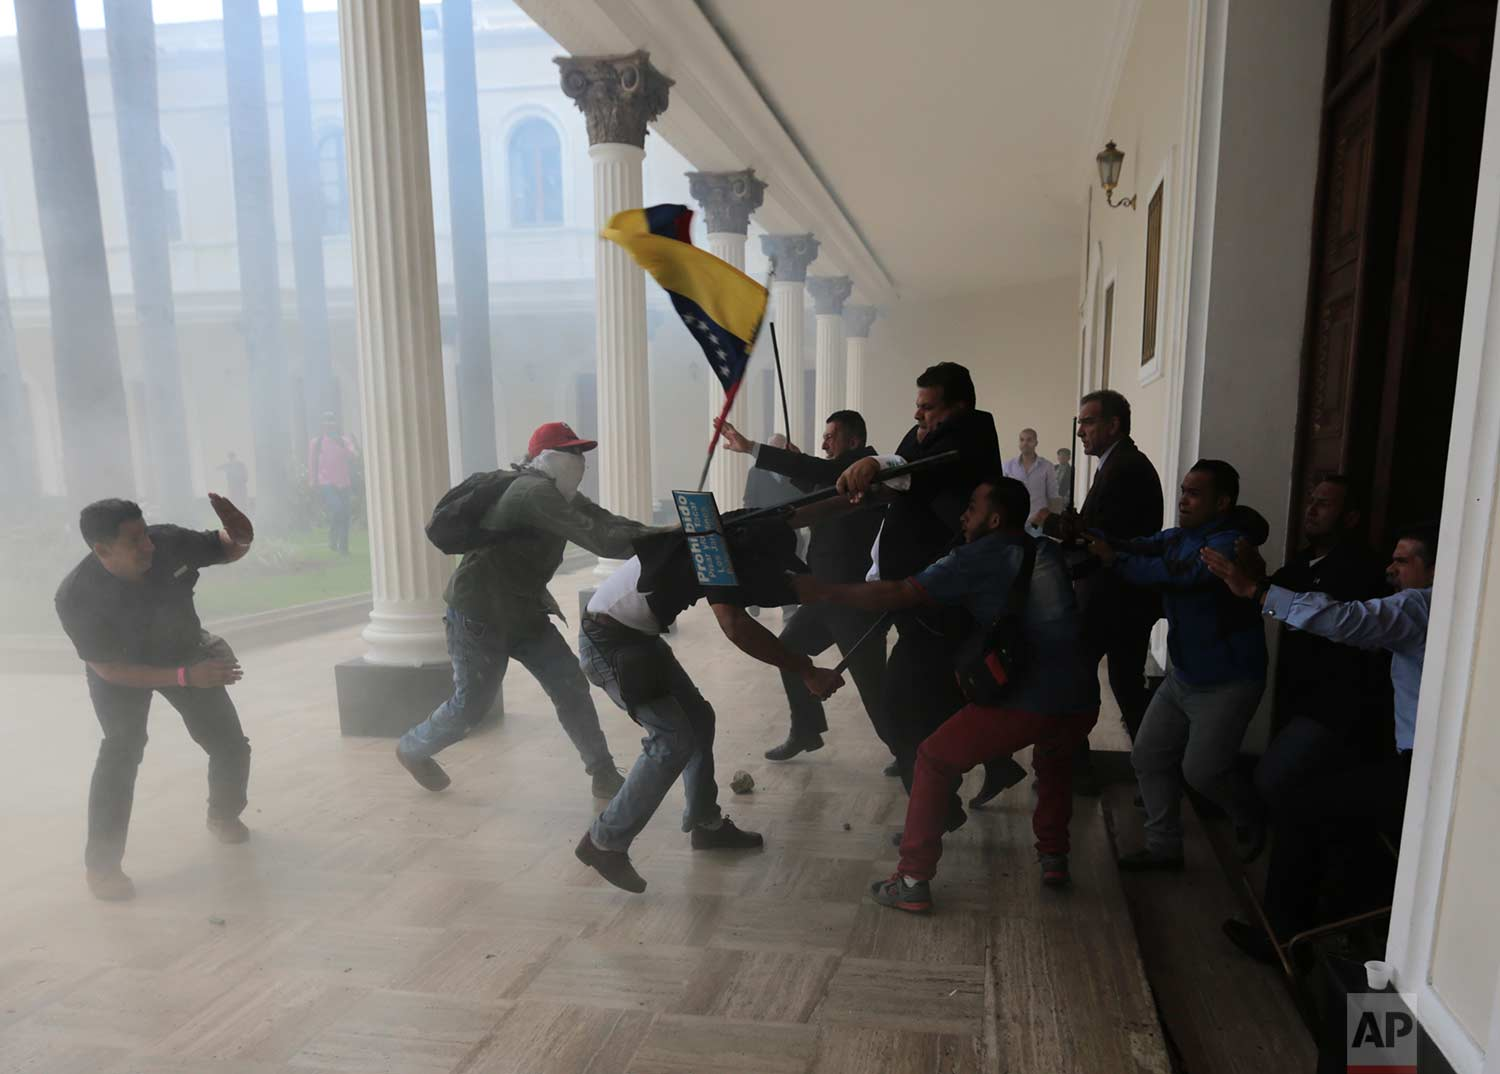 Opposition lawmakers brawl with pro-government militias who are trying to force their way into the National Assembly during a special session coinciding with Venezuela's independence day, in Caracas, Wednesday, July 5, 2017. (AP Photos/Fernando Llano)